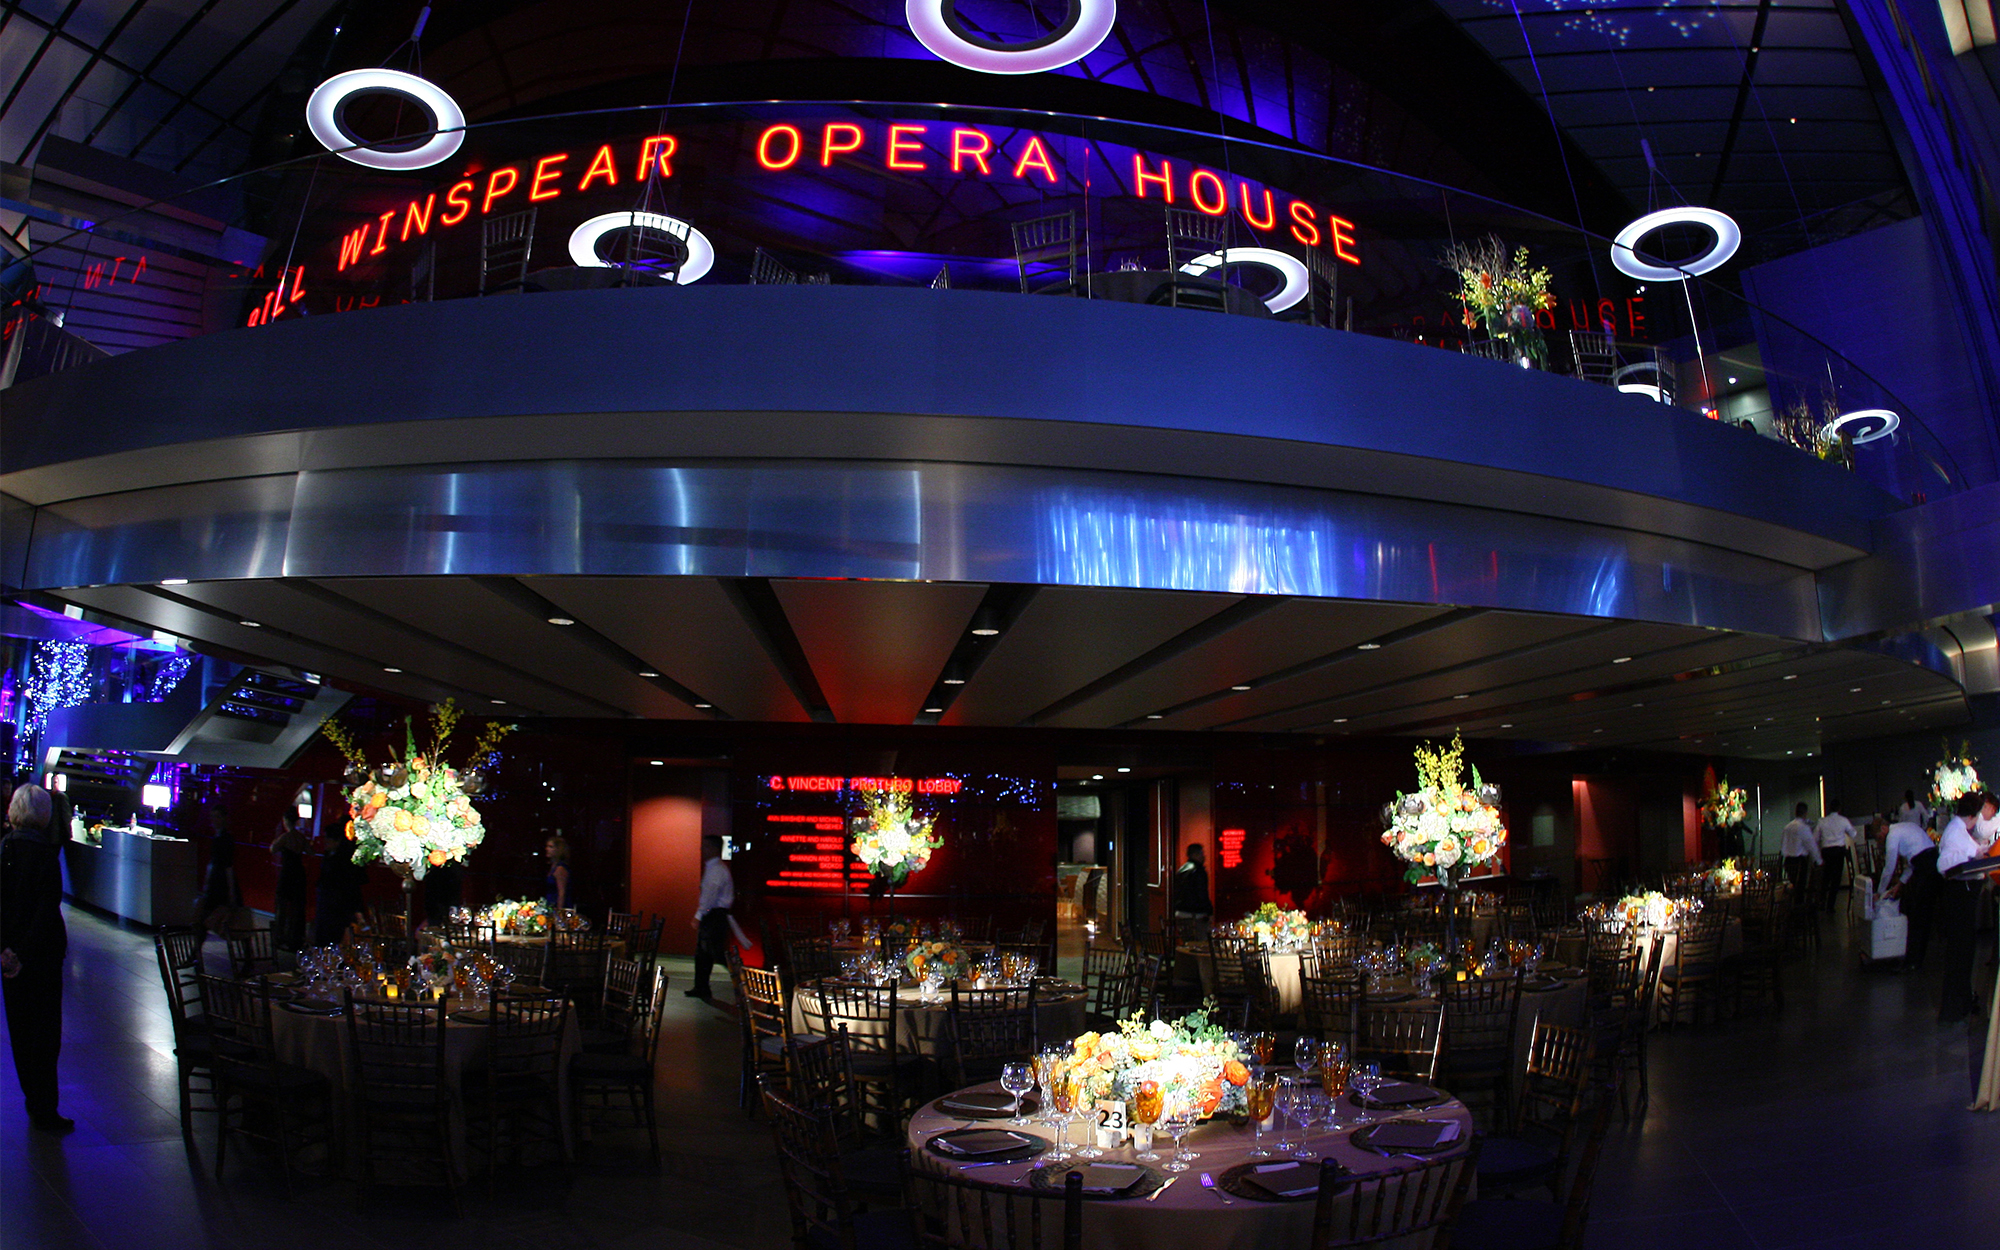 Decor Lighting at The Winspear Opera House Dallas Texas